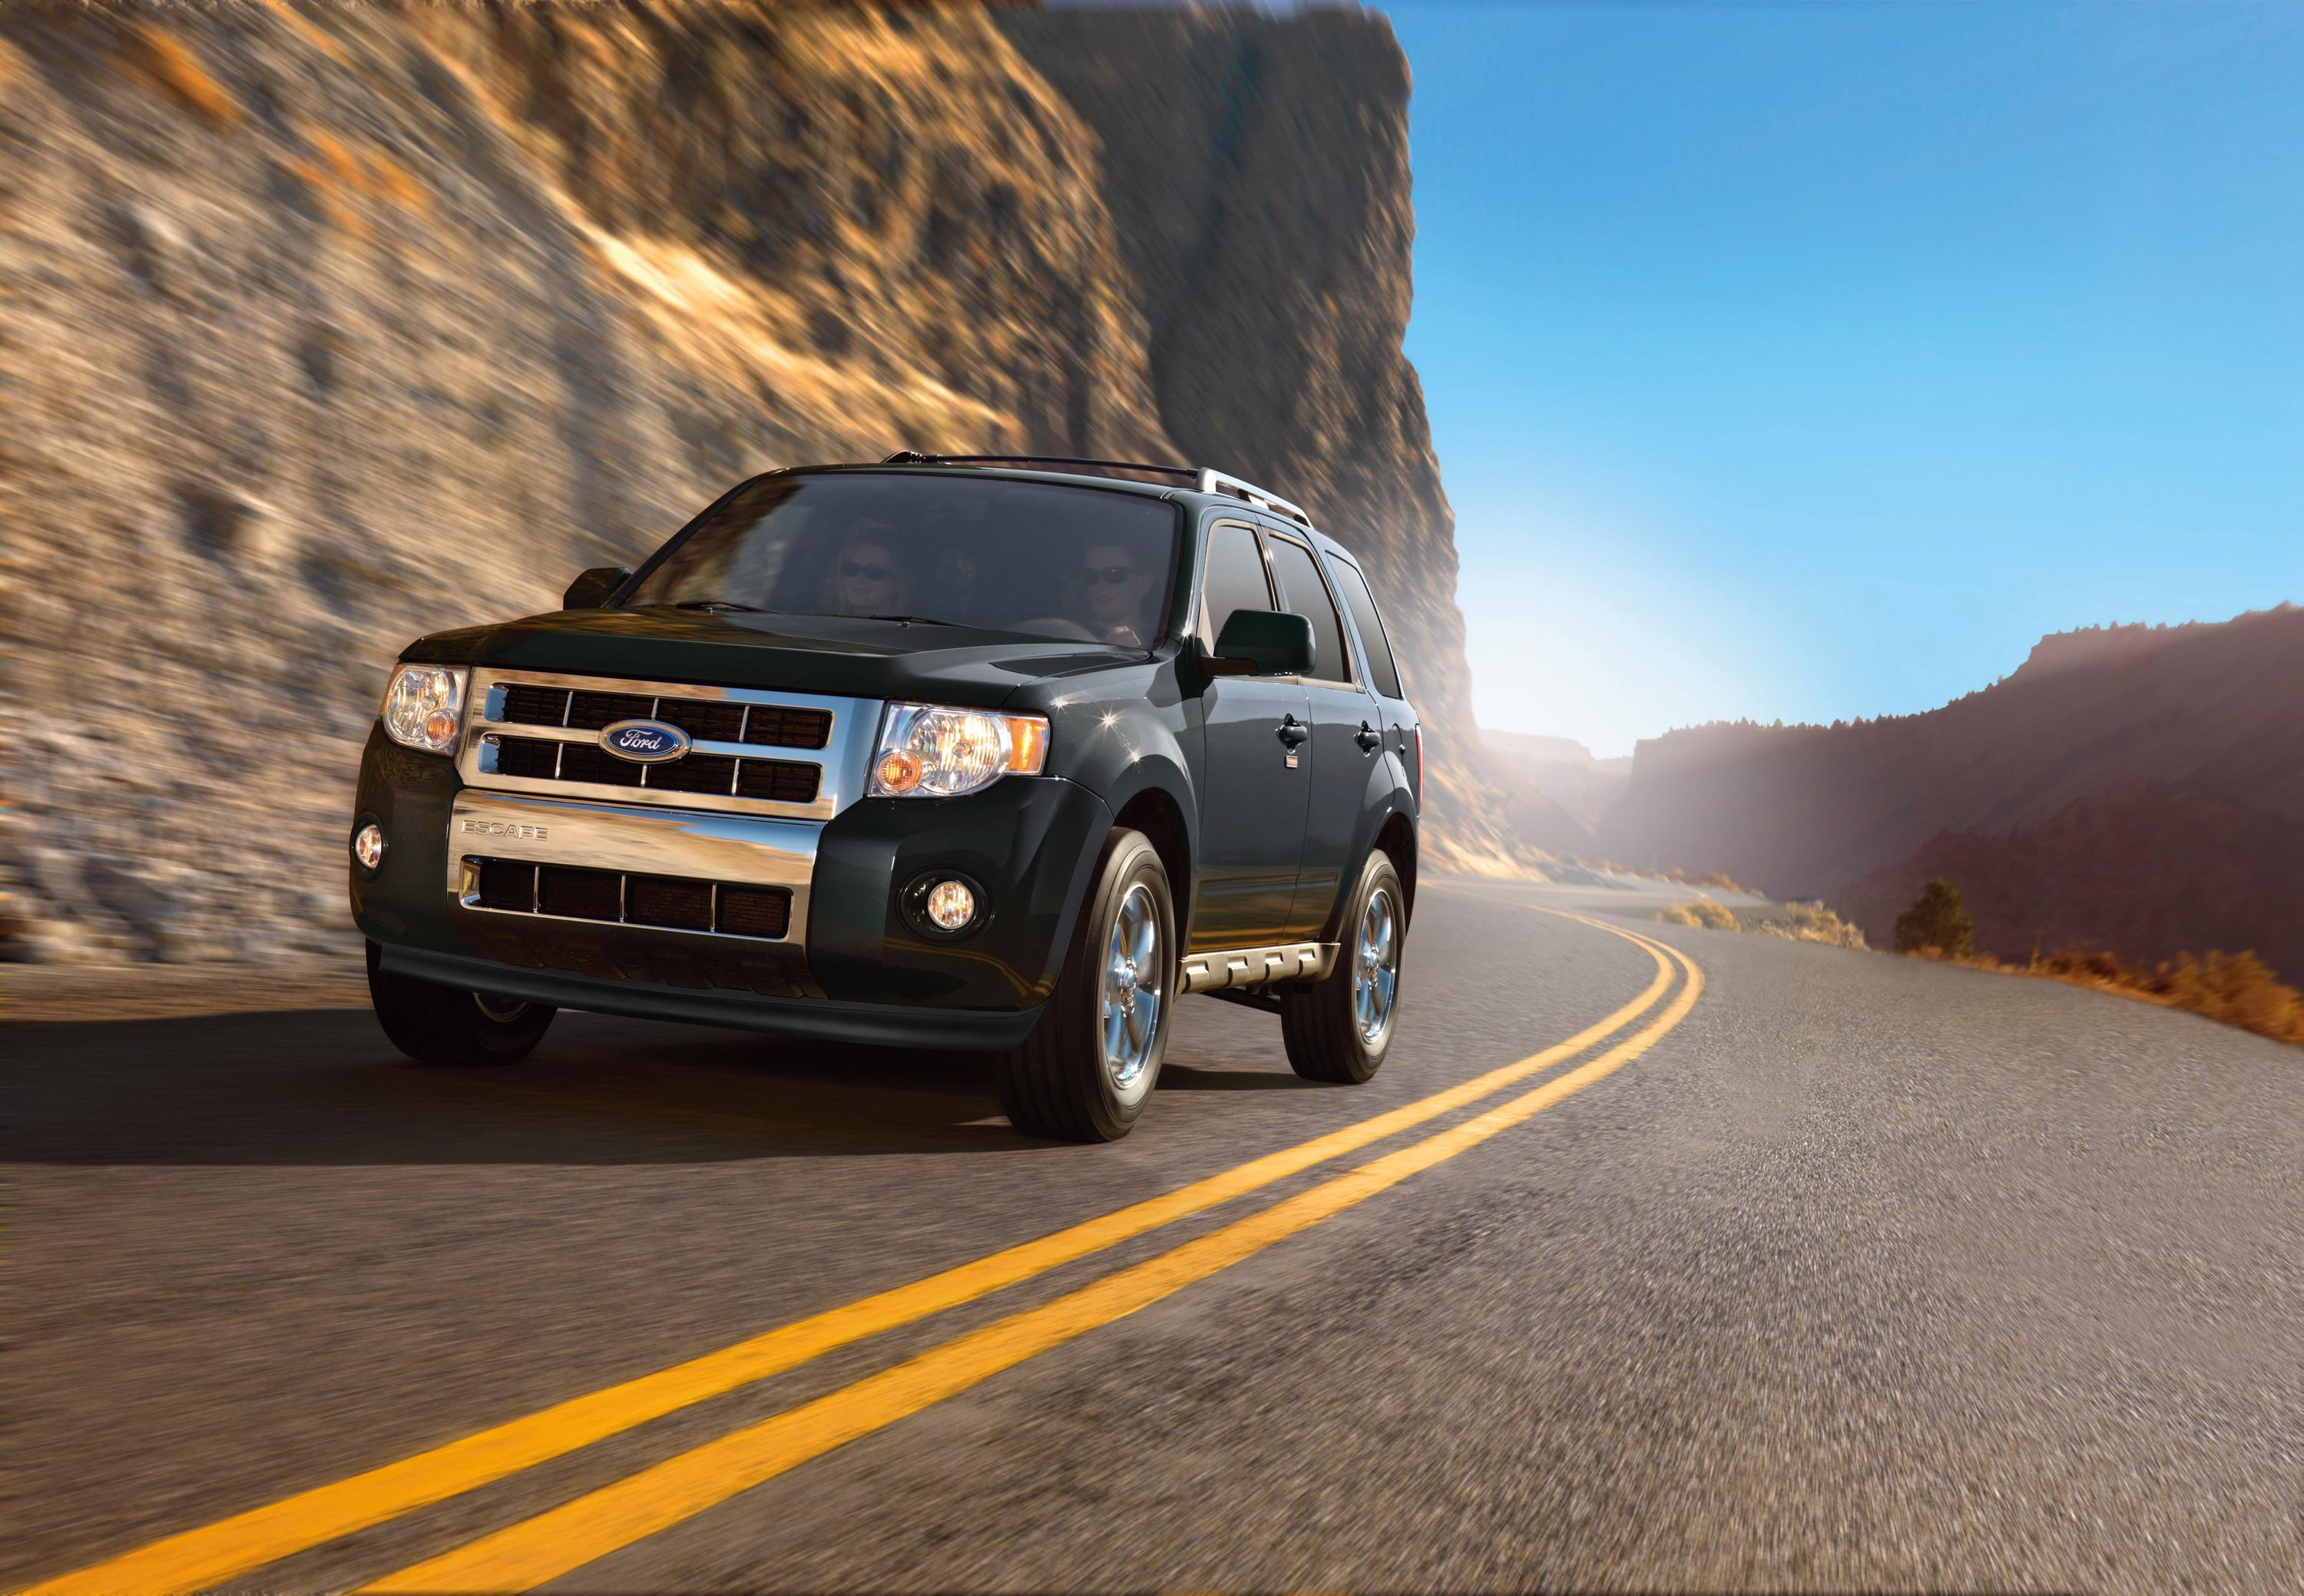 2009 ford escape review top speed. Black Bedroom Furniture Sets. Home Design Ideas